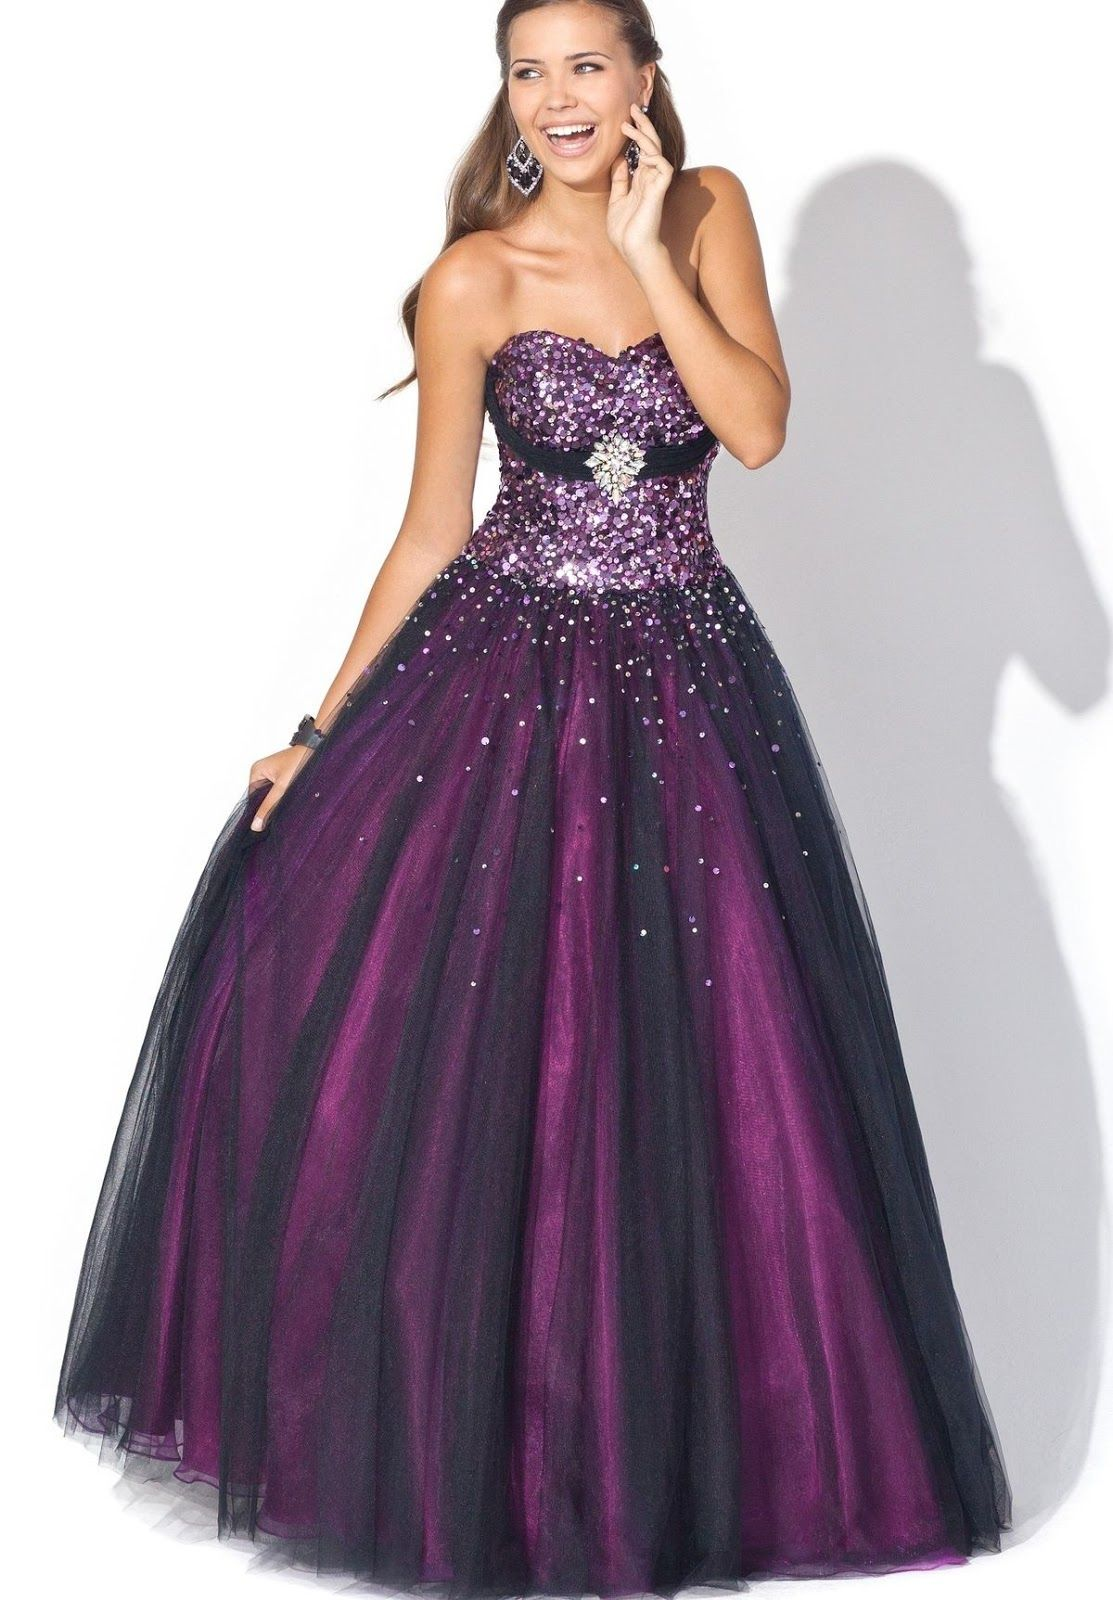 Prom dresses organza strapless sweetheart ball gown long prom